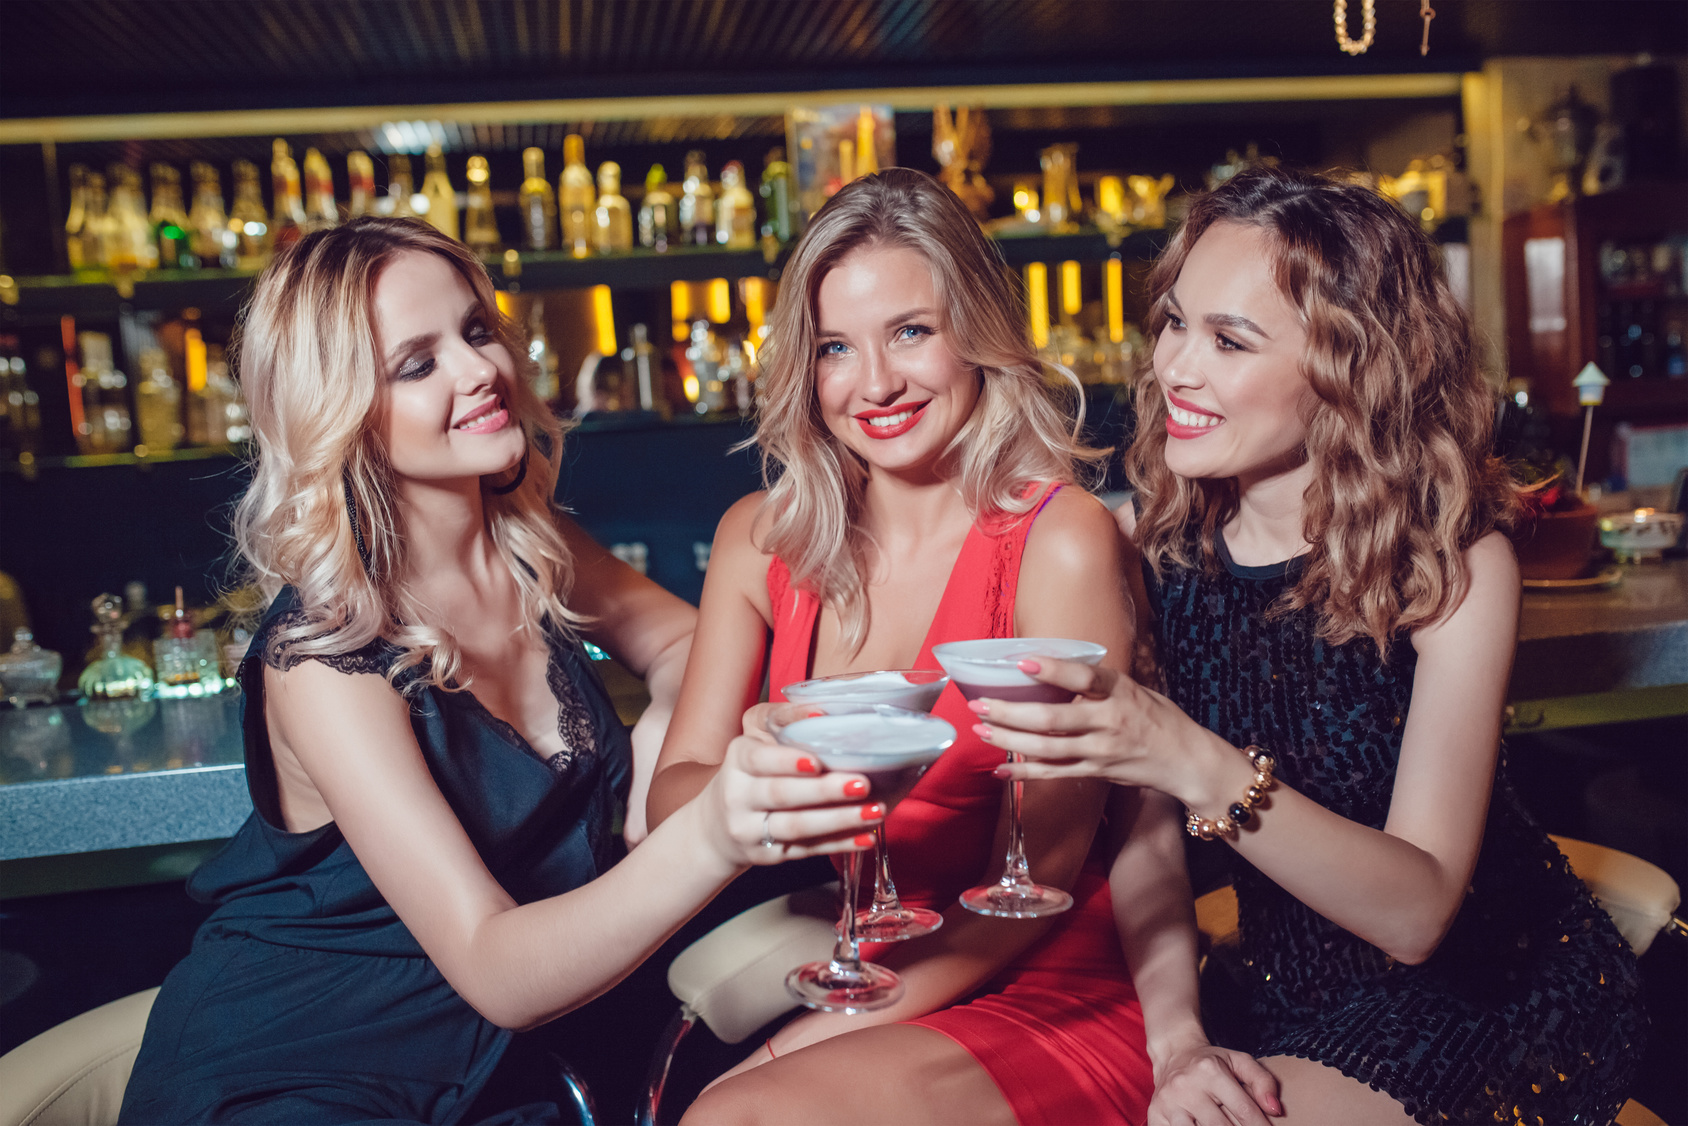 5 Must-Haves When Nightclubbing with Your Friends